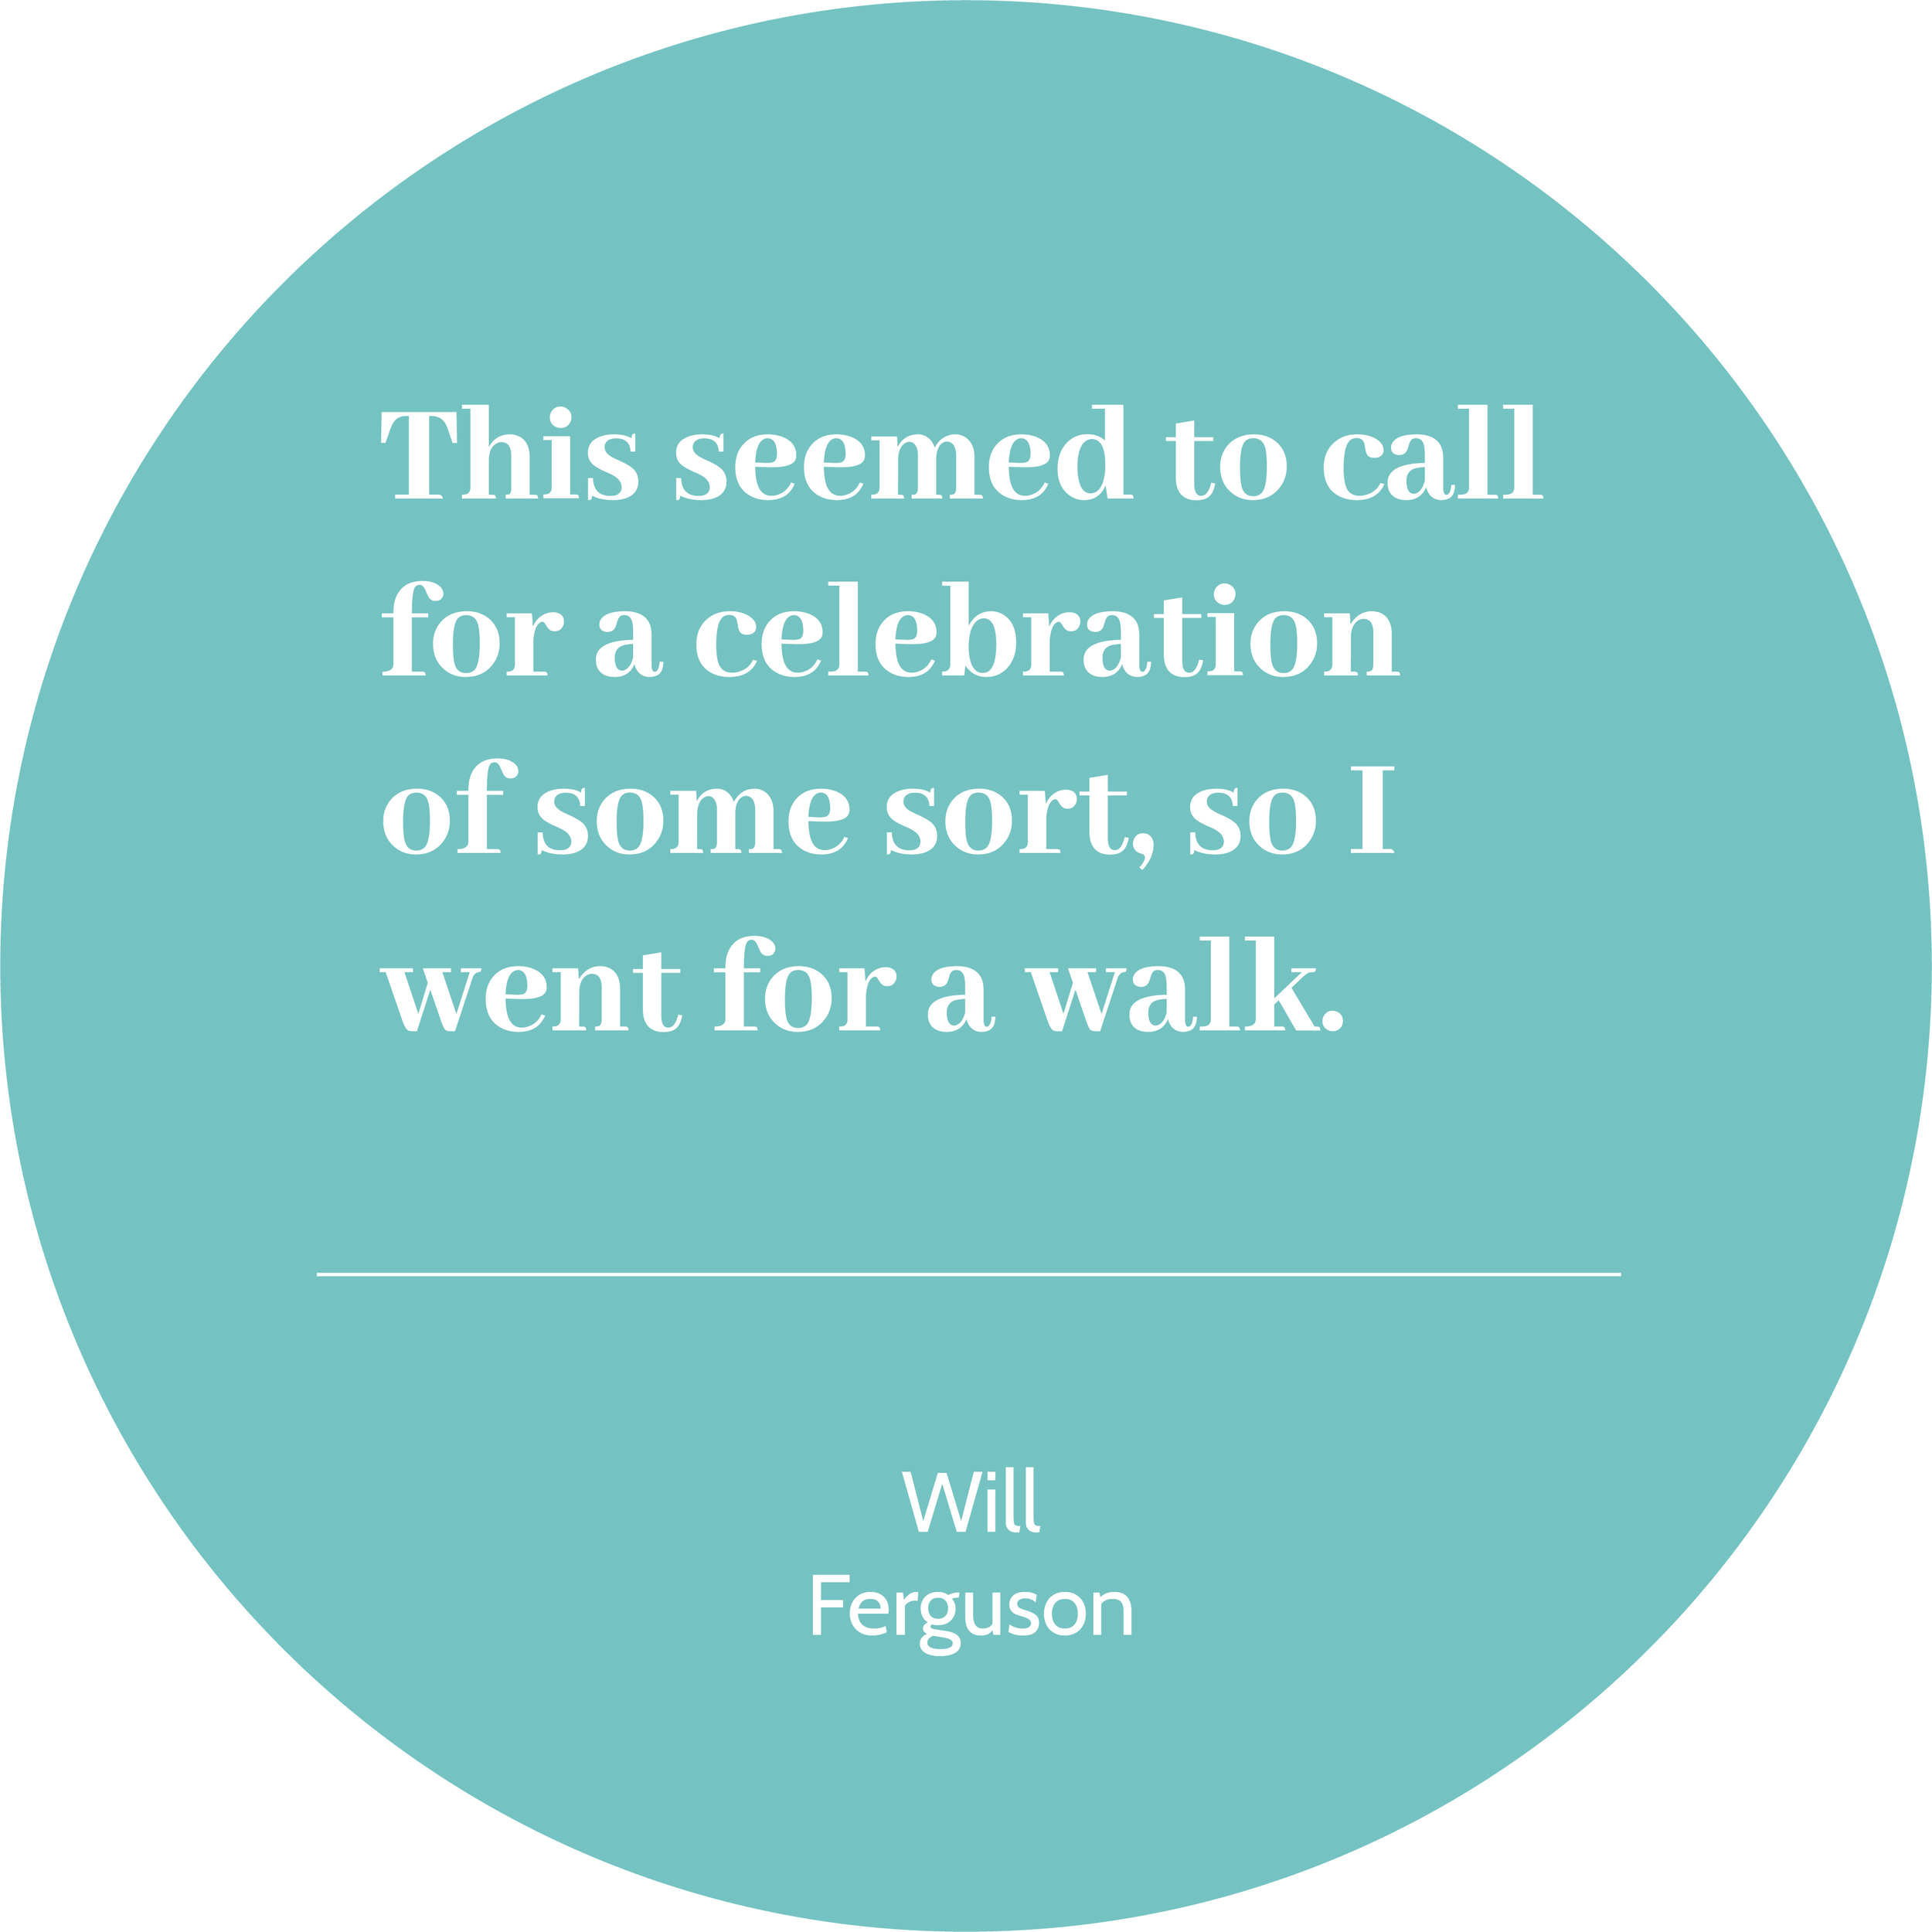 Will Ferguson quote 2019.04.24.png